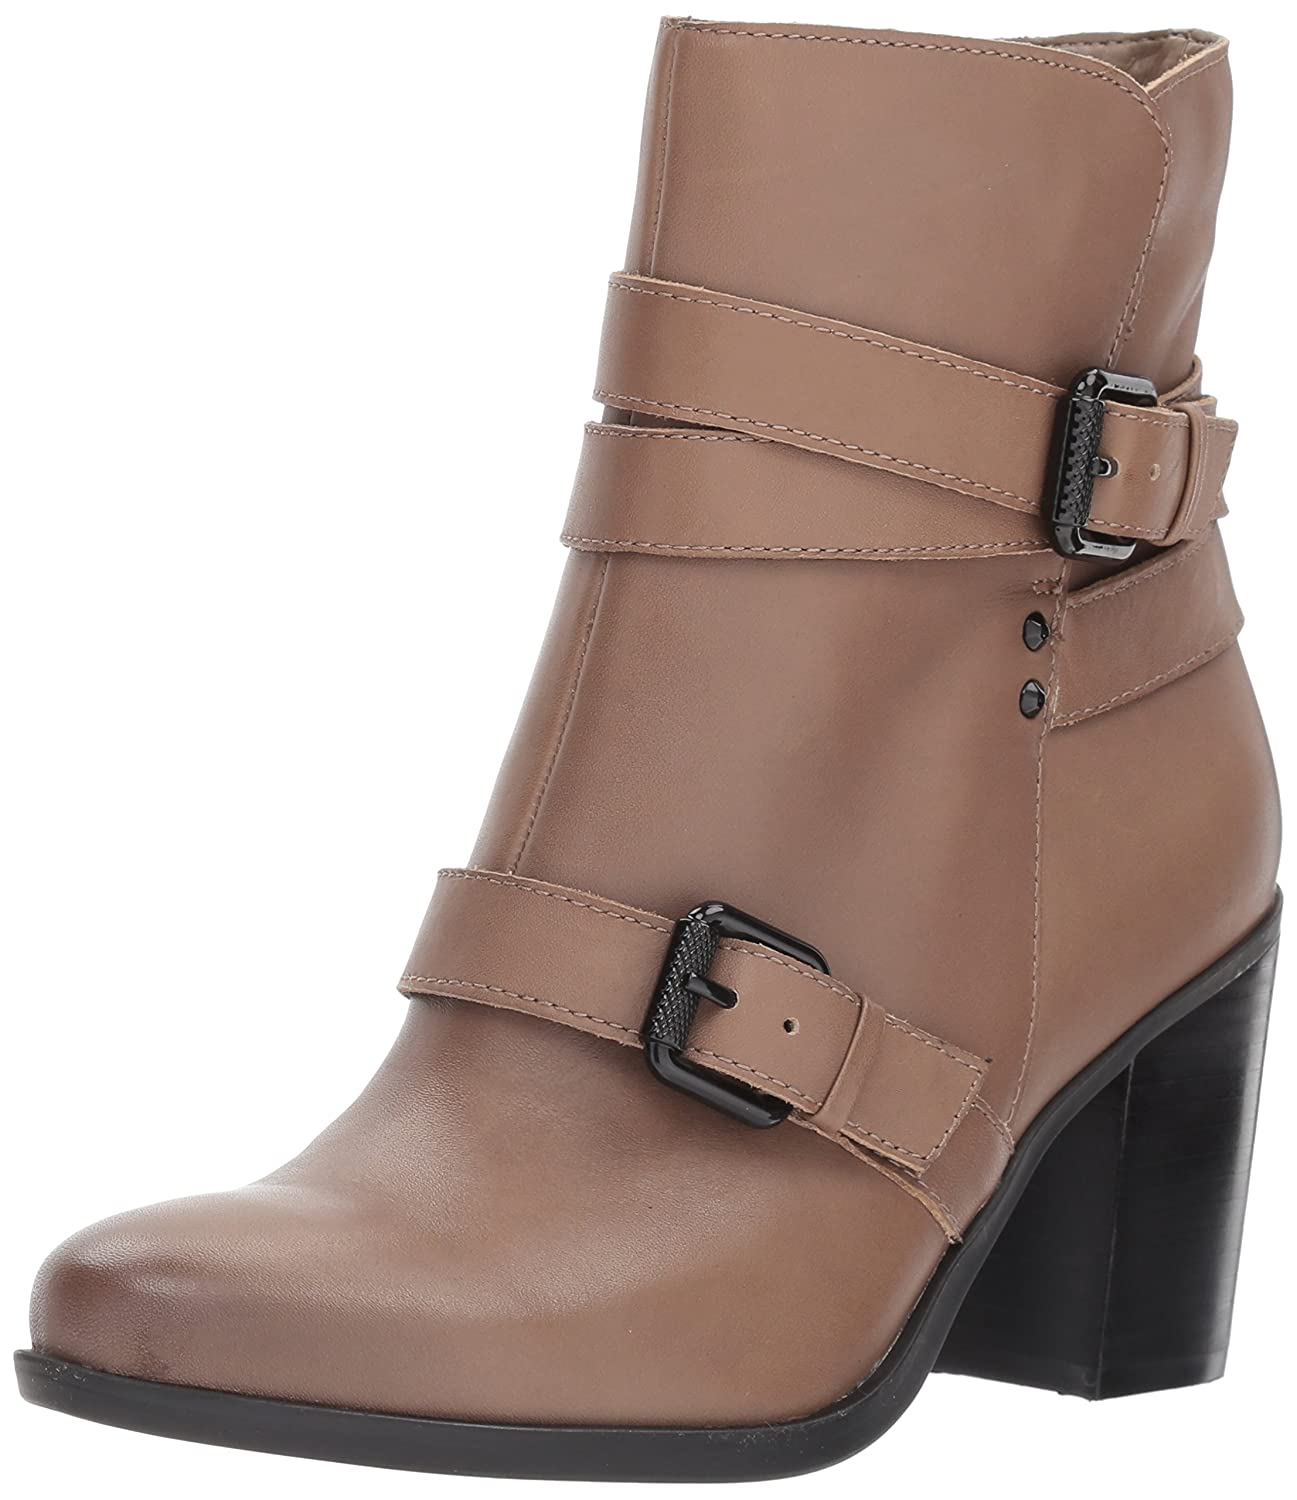 Naturalizer Women's Karlie Harness Boot B06WP6HW94 5 M US|Taupe